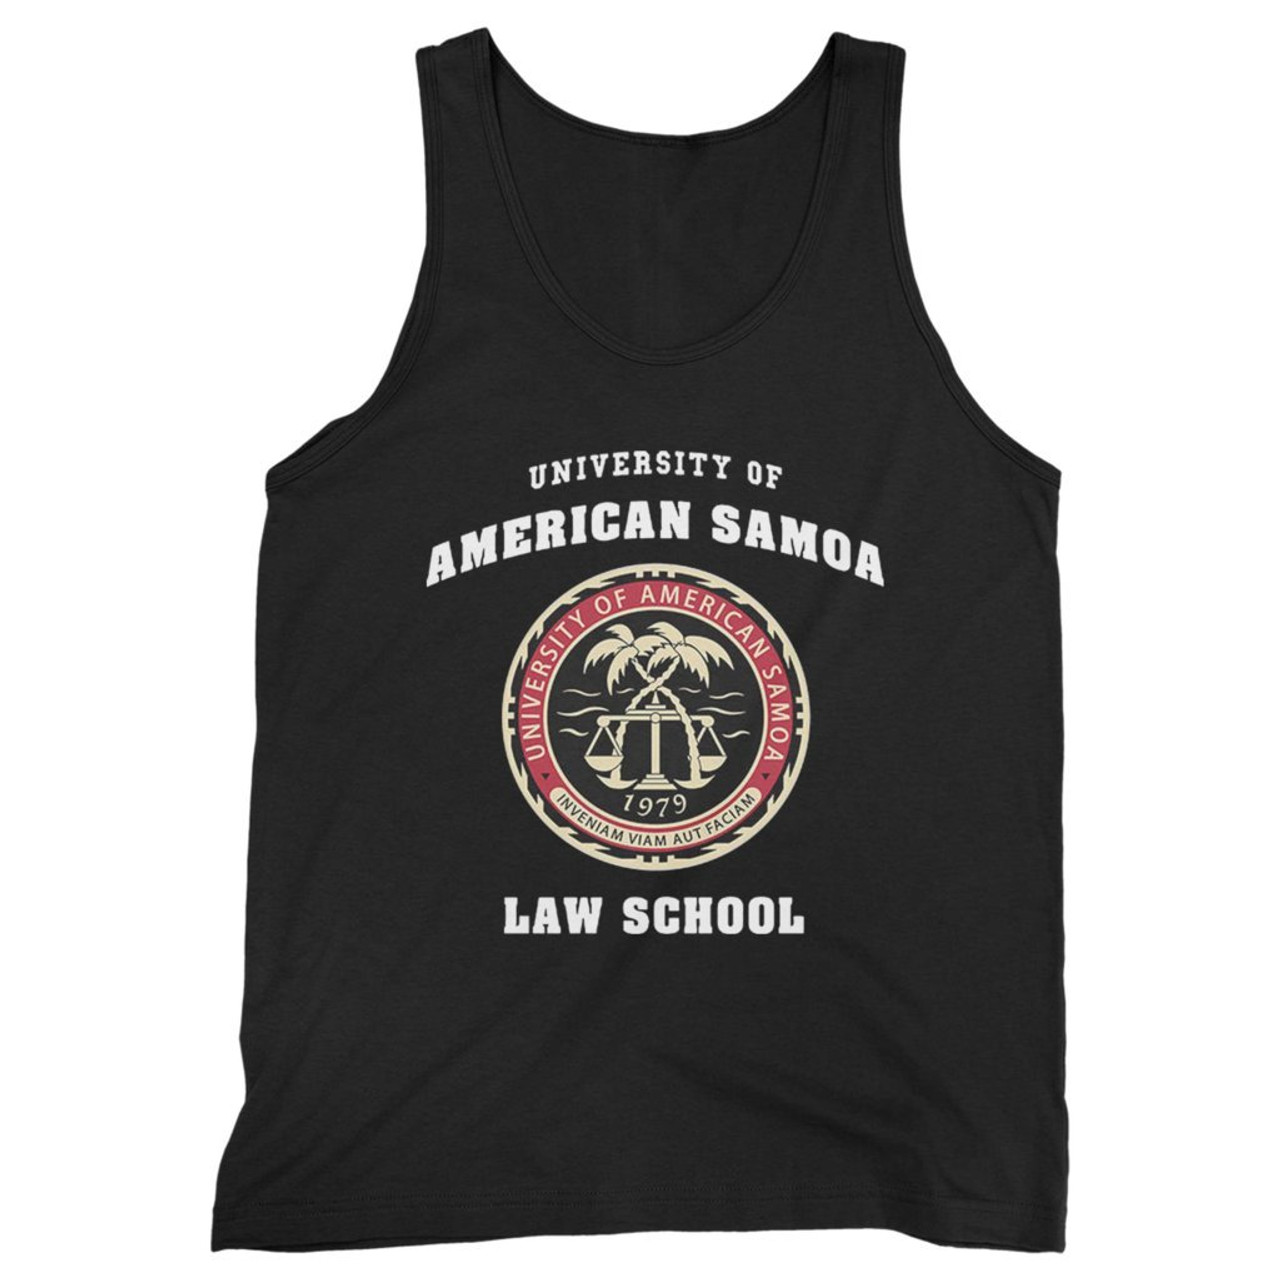 University Of American Samoa Law School Men Tank Top This white ceramic mug holds 11 ounces of your favorite hot or cold beverage and is microwave and dishwasher safe. university of american samoa law school men tank top